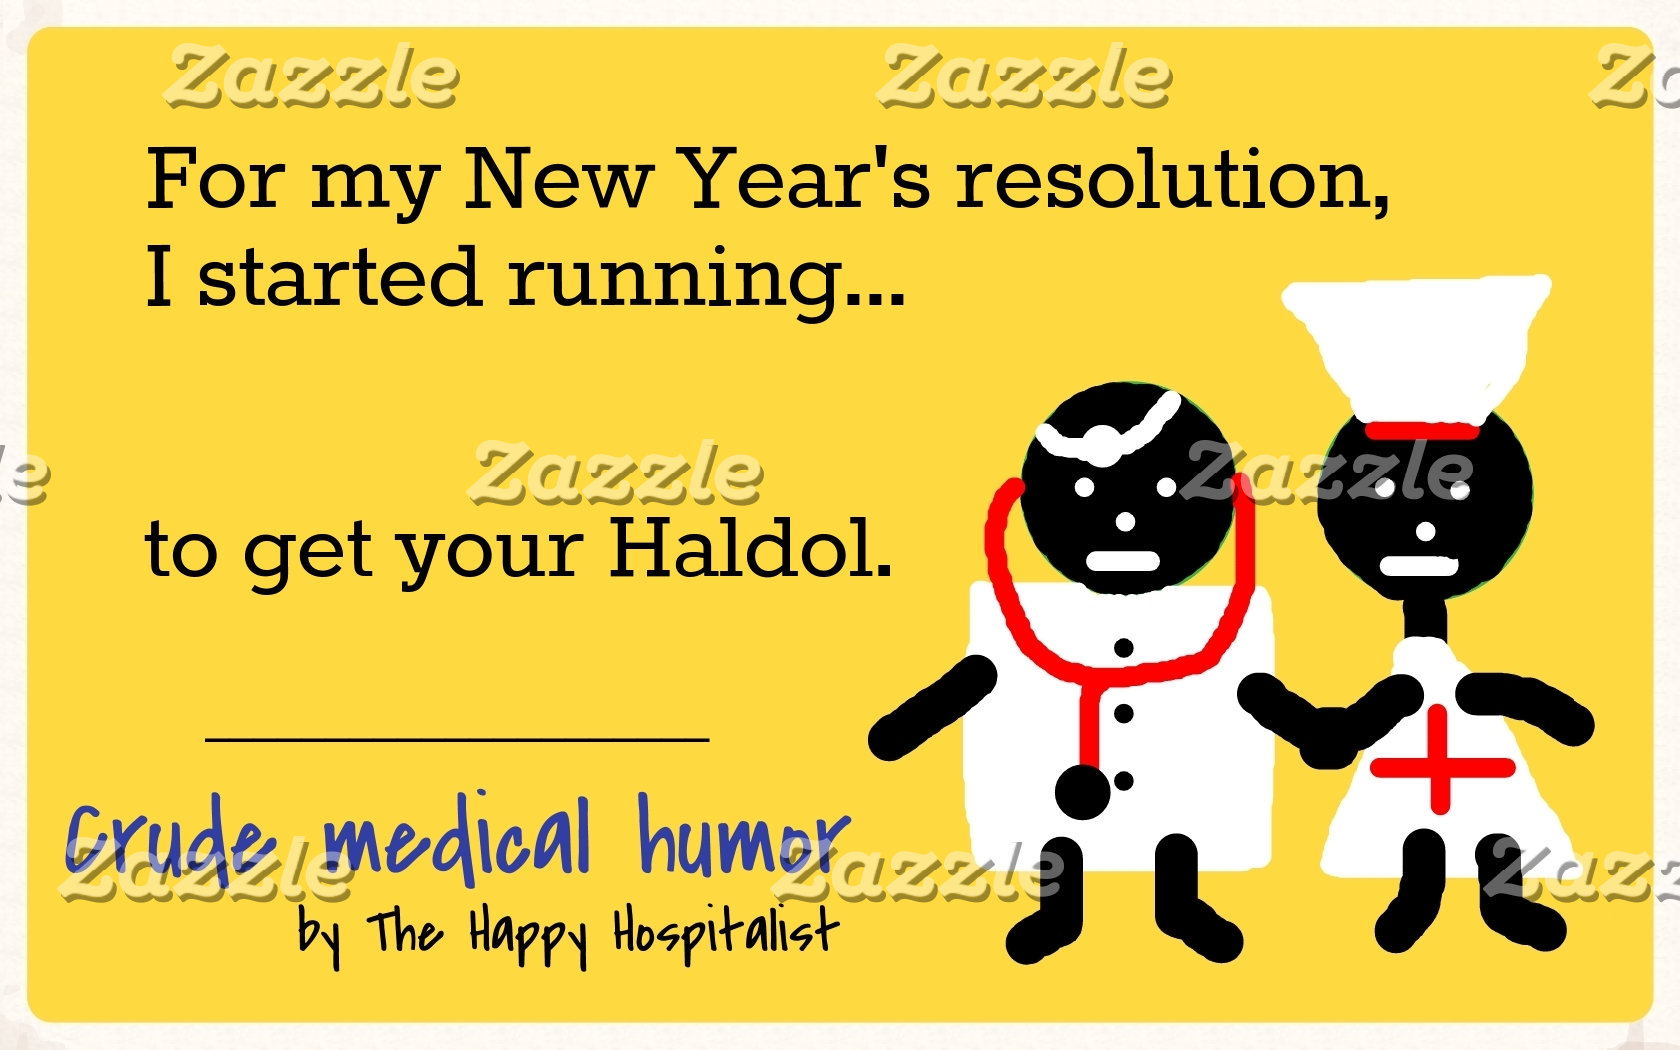 For my New Year's resolution, I started running...